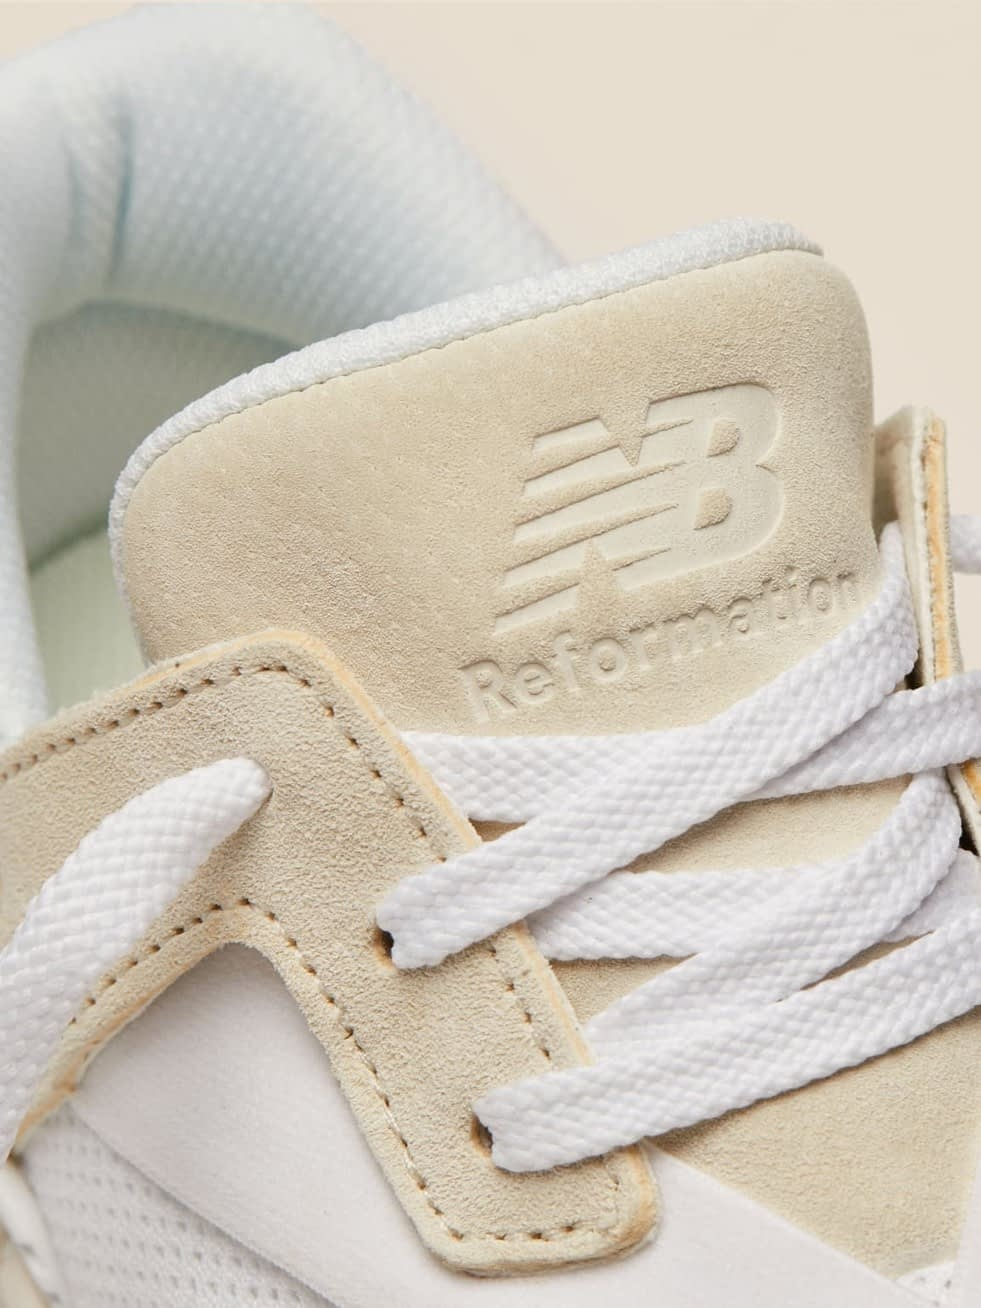 , Reformation x New Balance Sustainable Sneakers, TheCircularEconomy.com